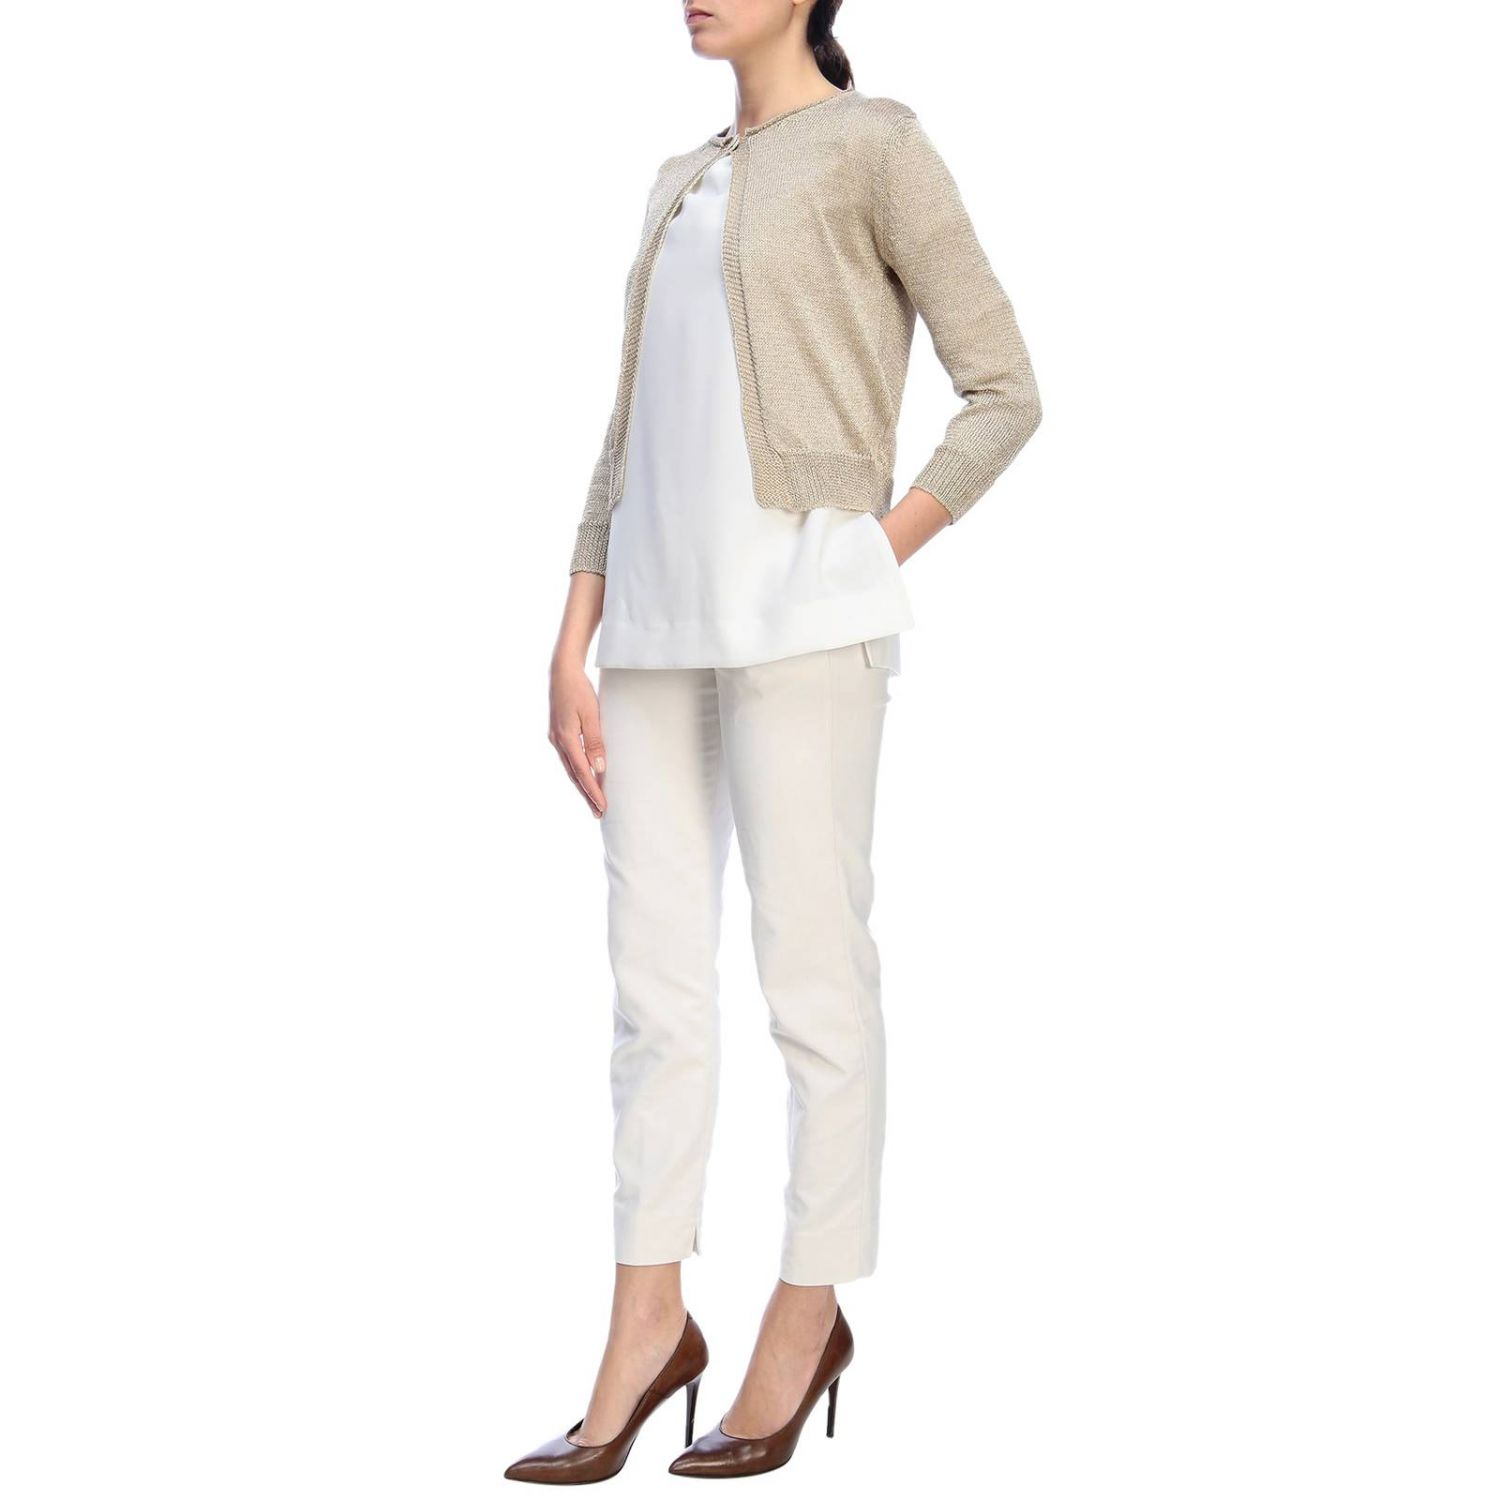 Jumper women Rossopuro gold 4